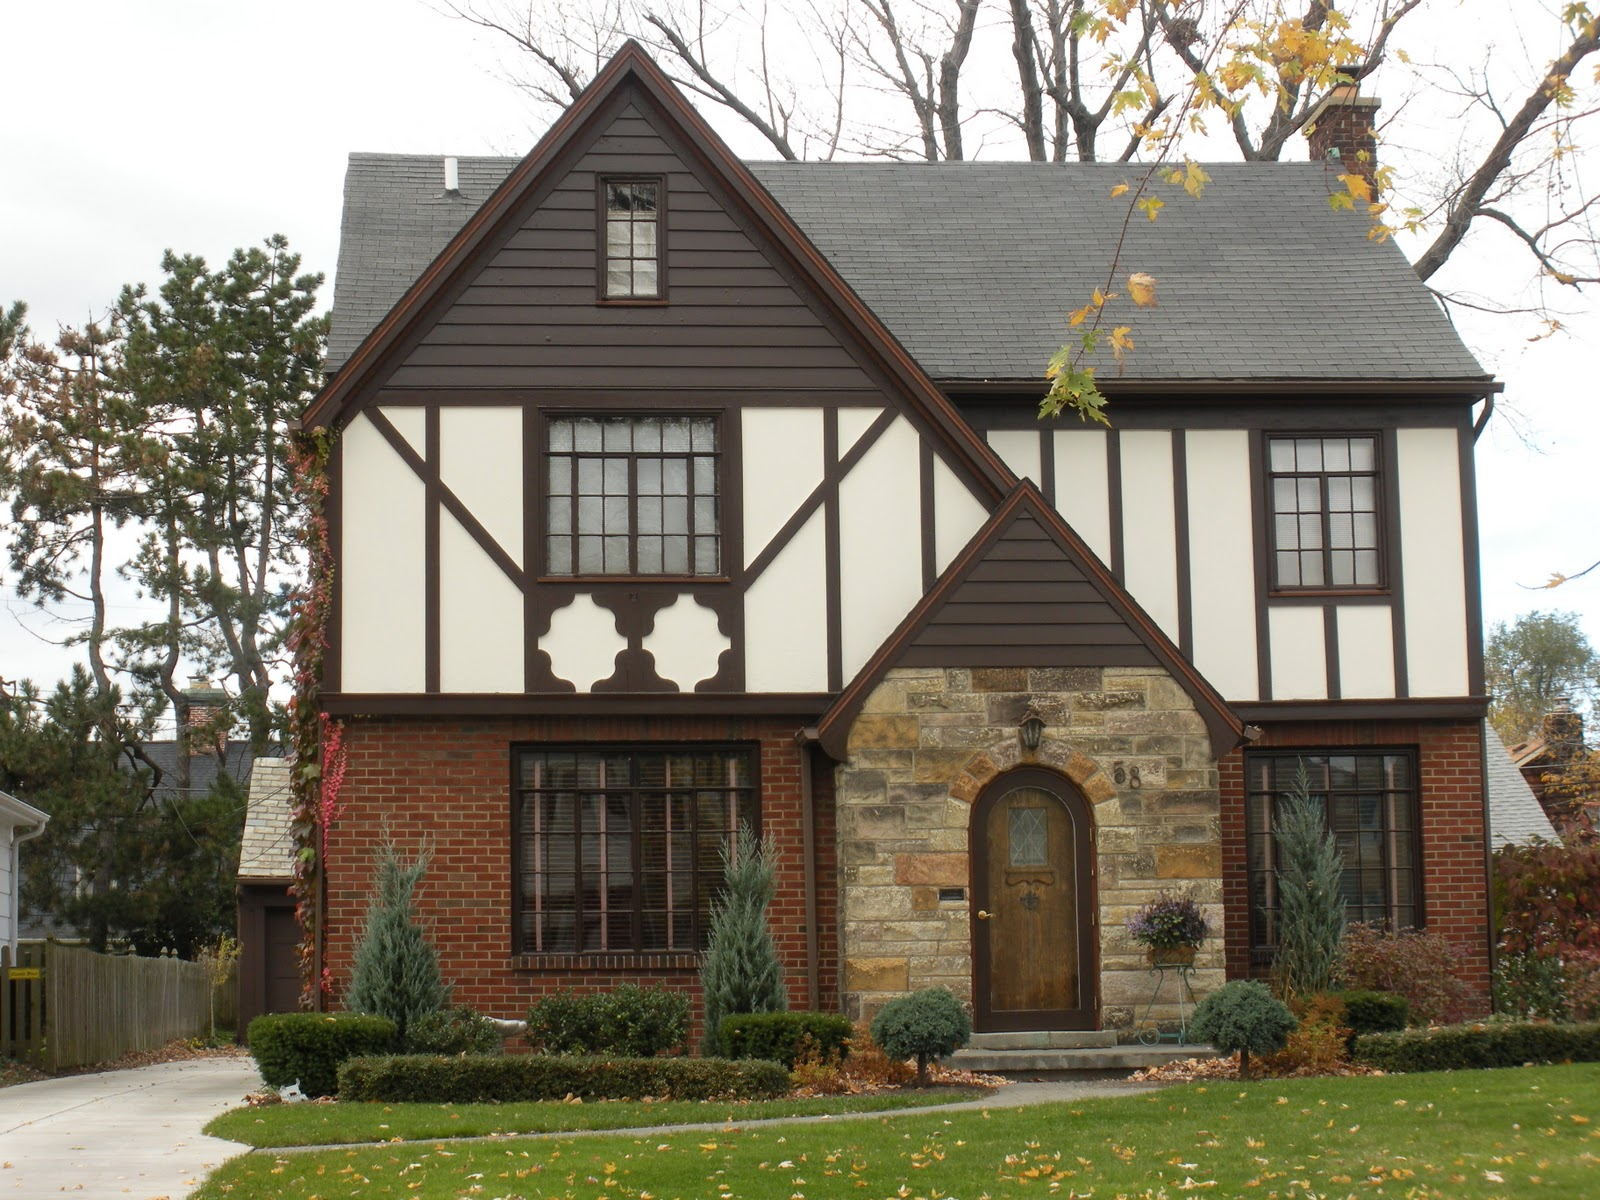 Reinventing the past housing styles of tudor ville and for Pictures of different homes